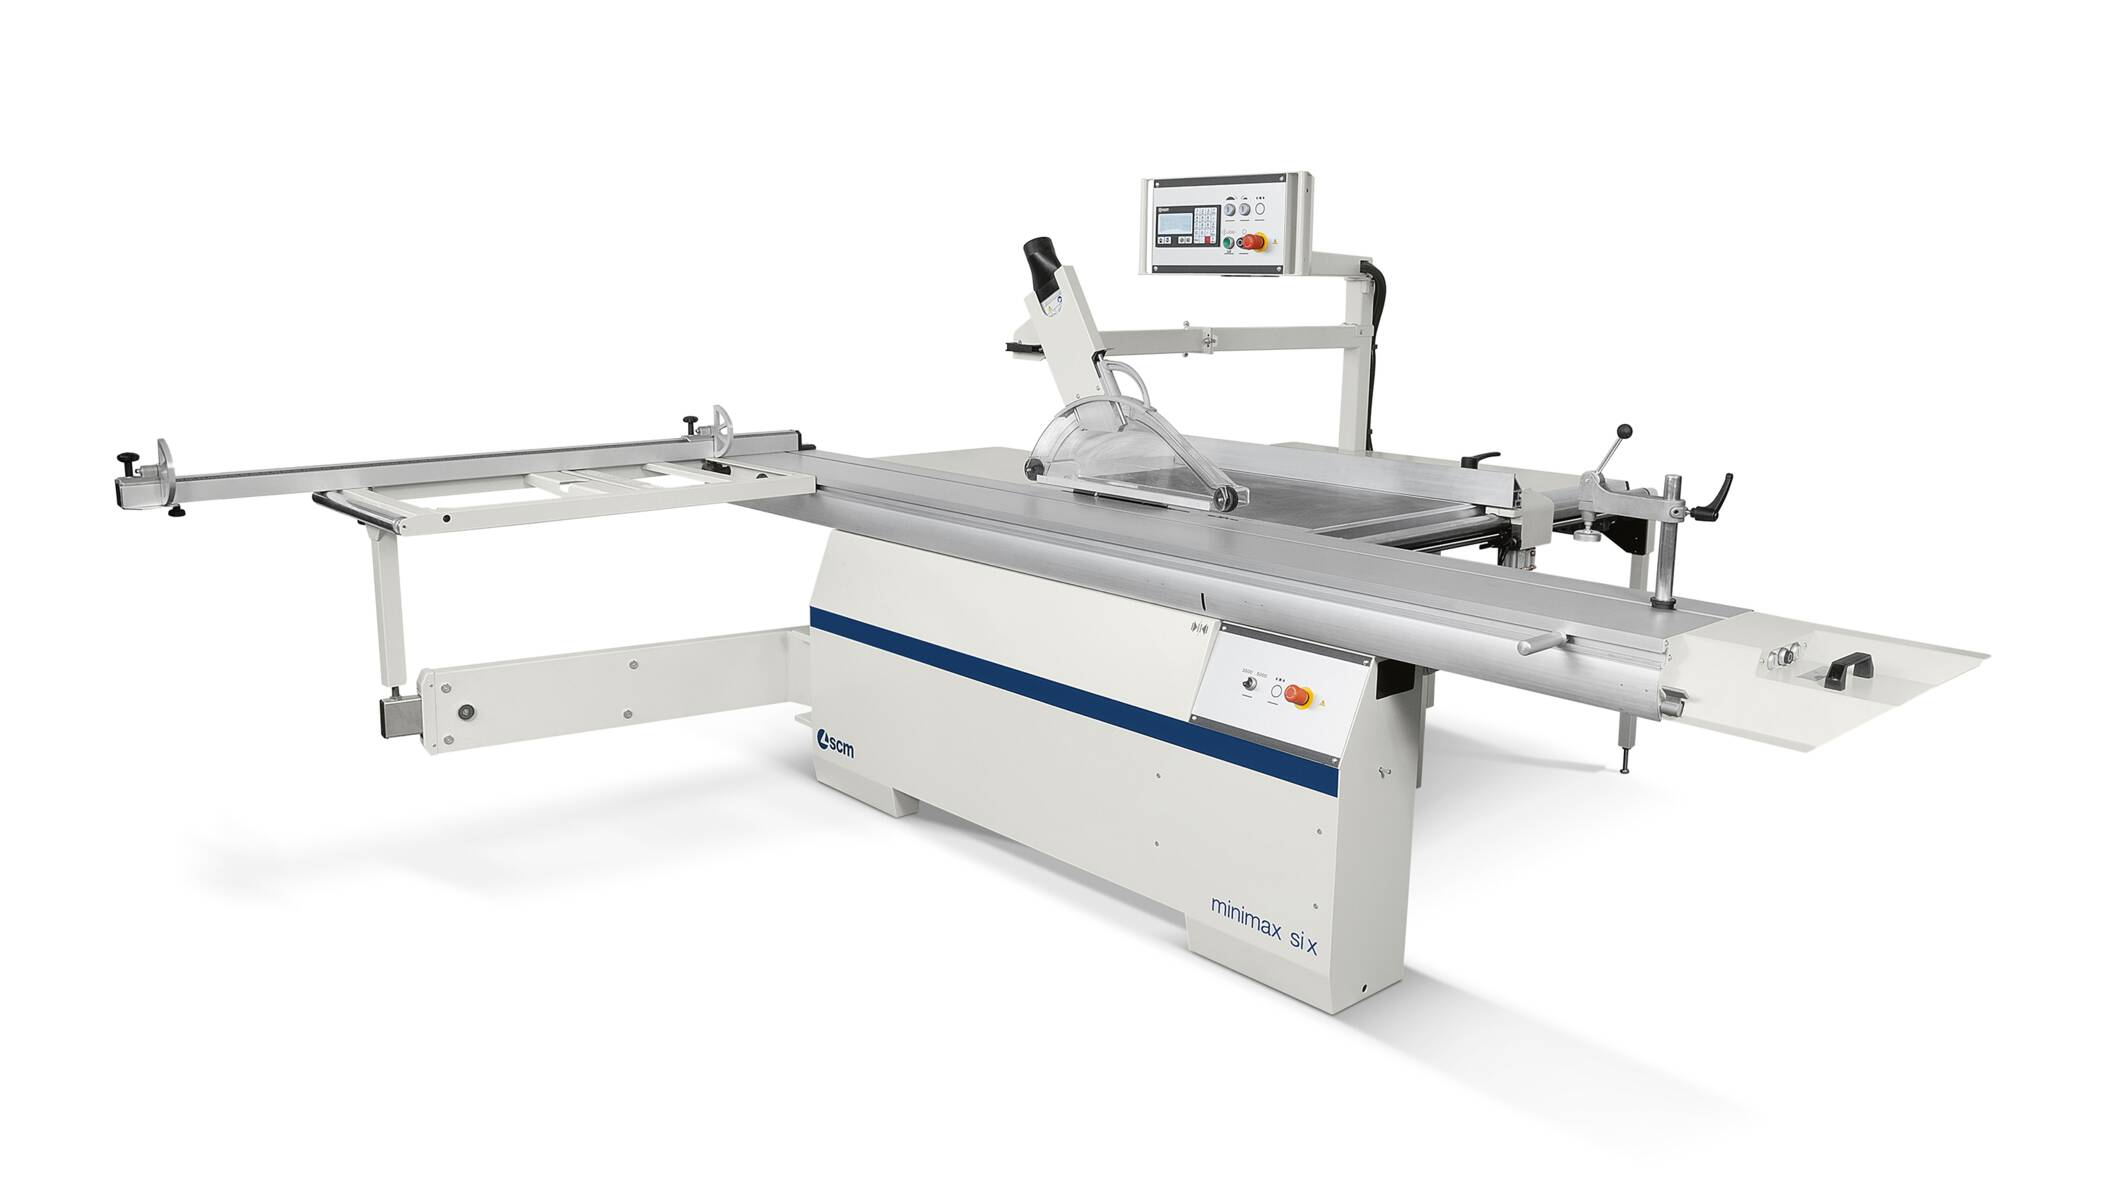 Joinery machines - Sliding table saws - minimax si x